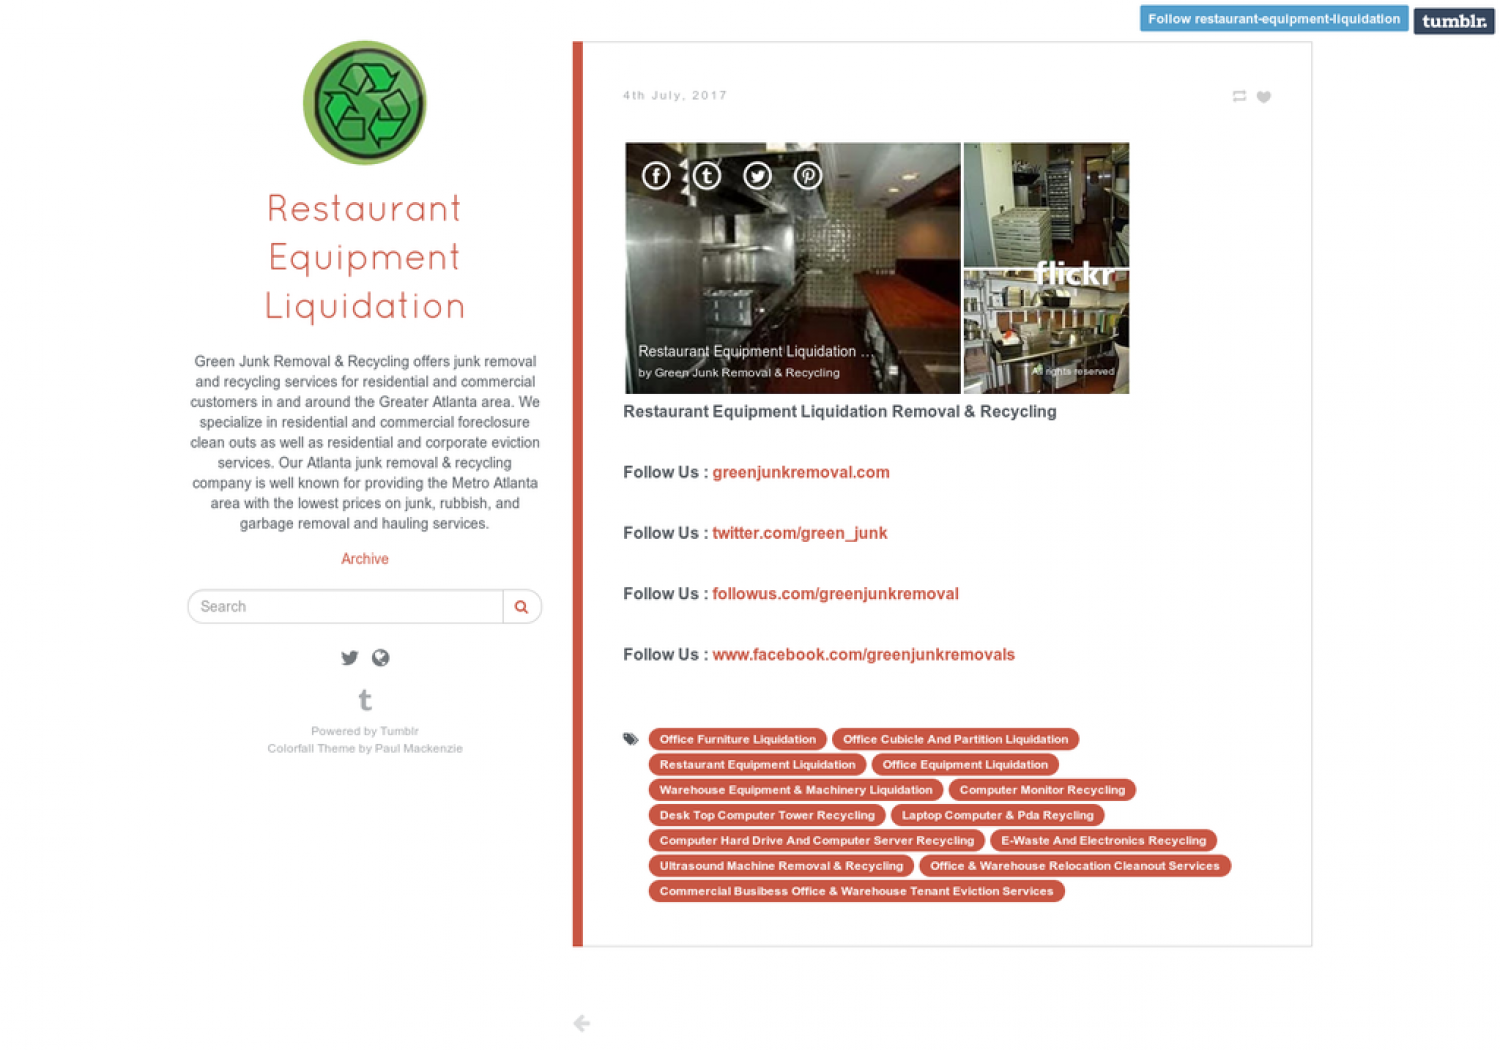 Restaurant Equipment Liquidation Removal & Recycling  Infographic